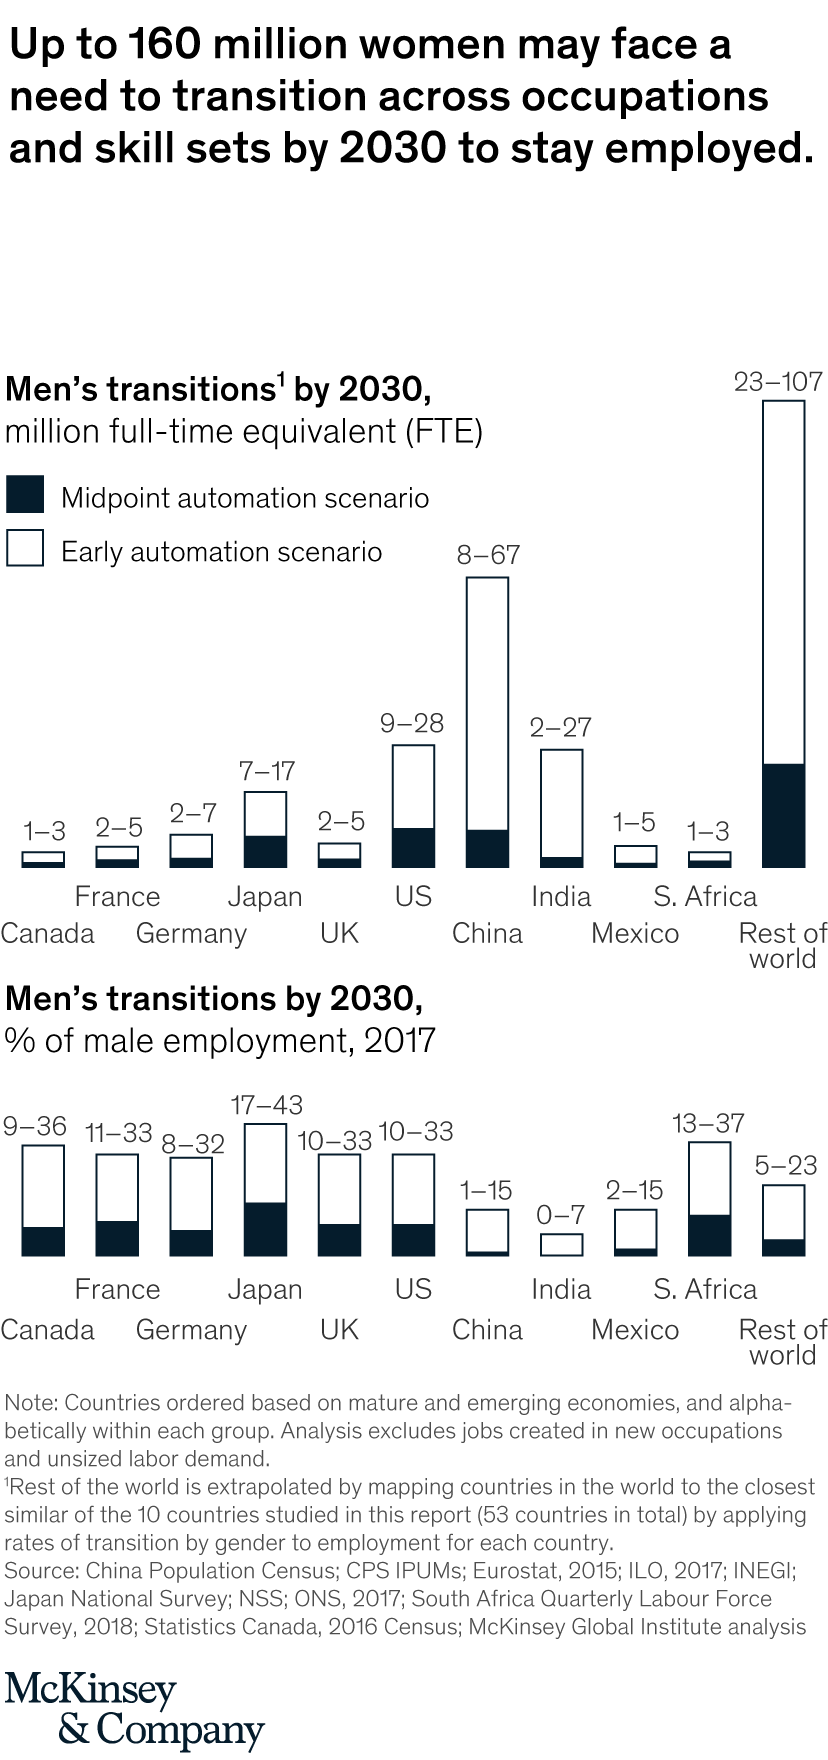 The future of women at work: Transitions in the age of